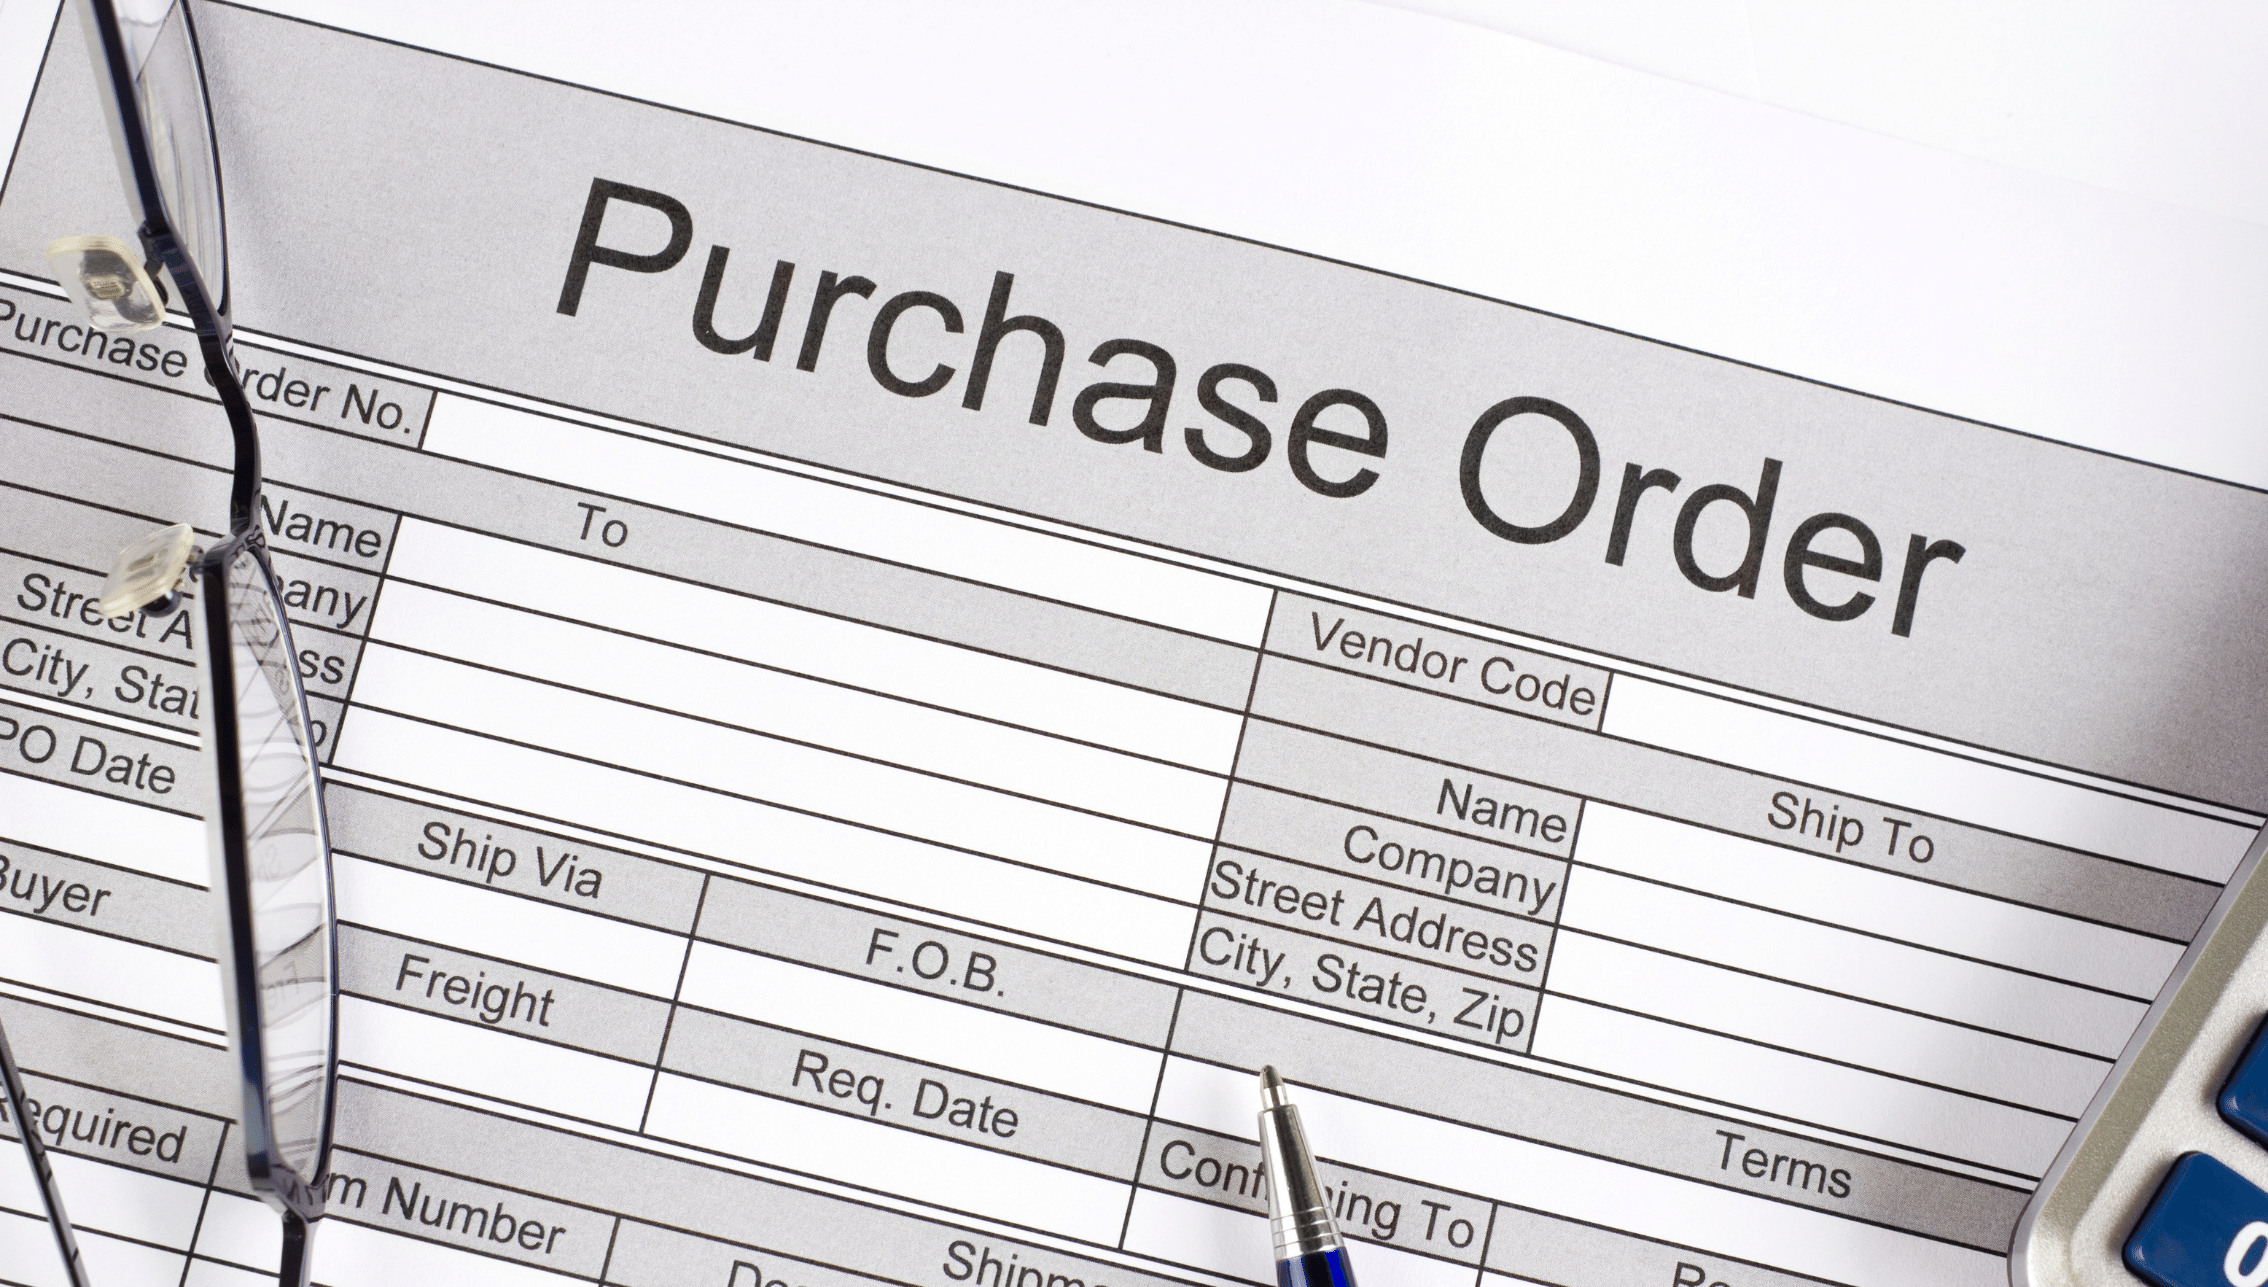 Purchase Orders: Why Your Business Needs Them